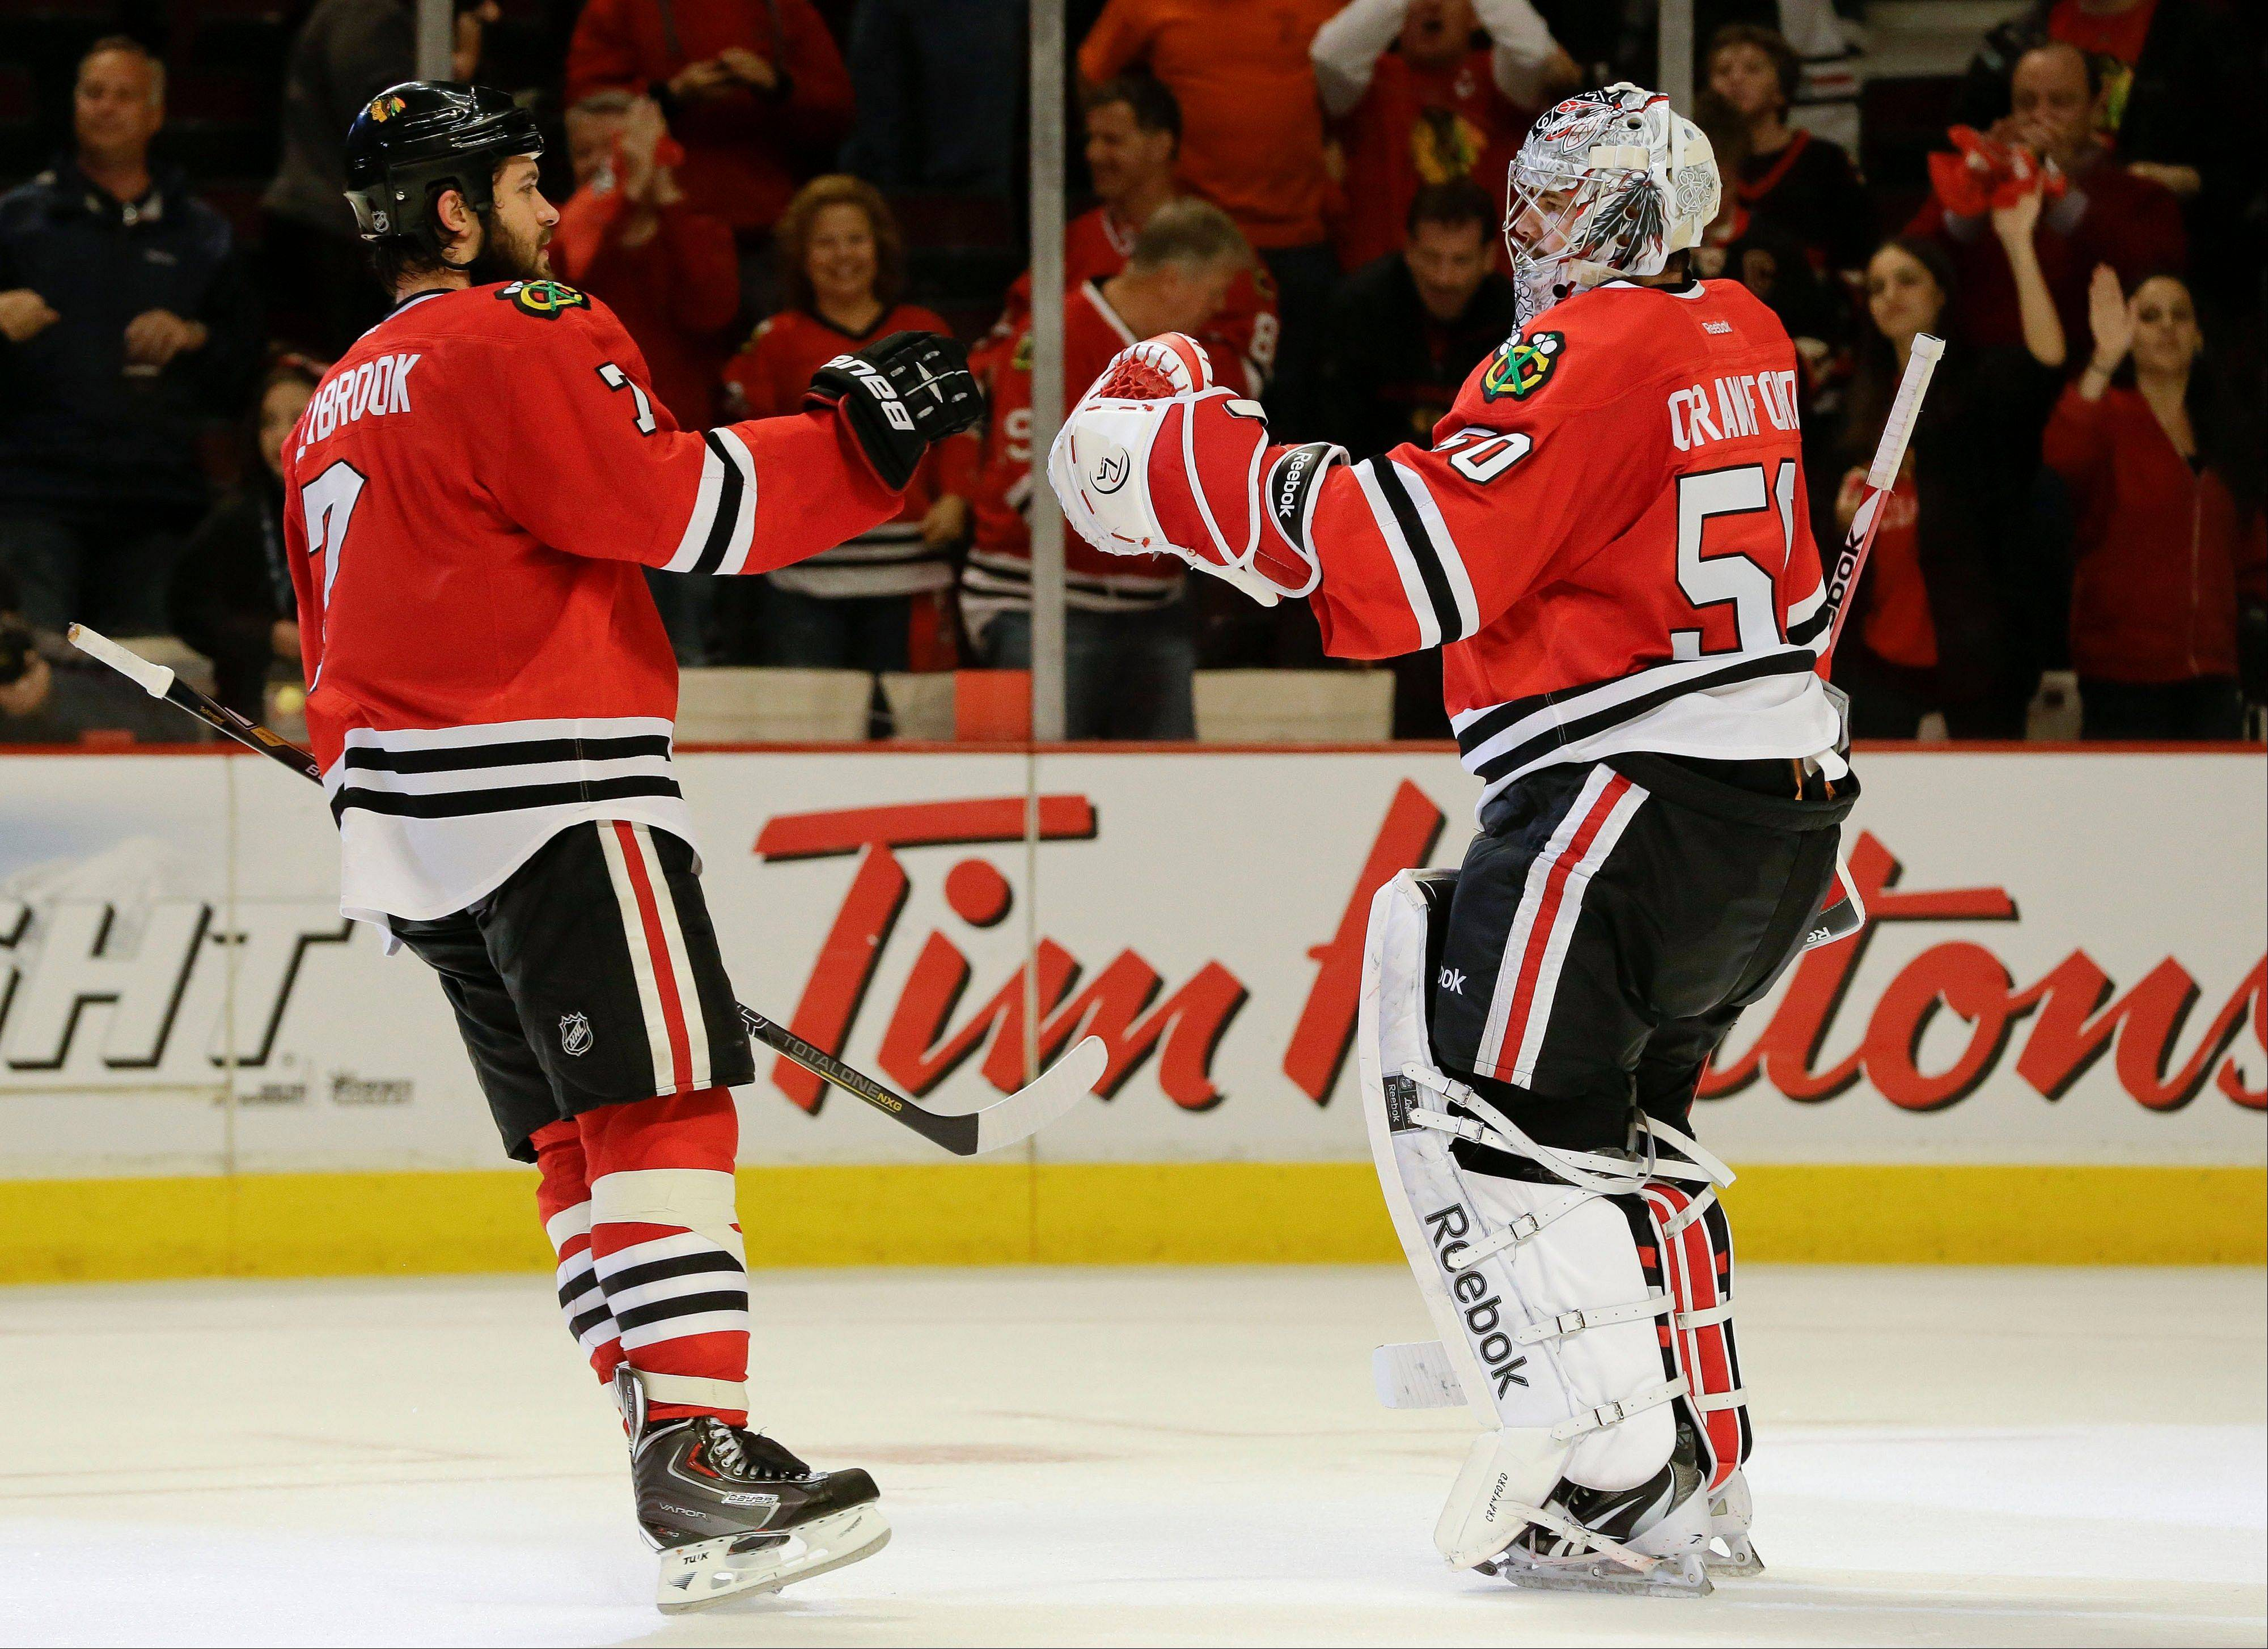 Chicago Blackhawks defenseman Brent Seabrook (7) congratulates goalie Corey Crawford (50) after beating the Los Angeles Kings in Game 2 of an NHL hockey Stanley Cup Western Conference finals, Sunday, June 2, 2013, in Chicago. The Blackhawks won 4-2.